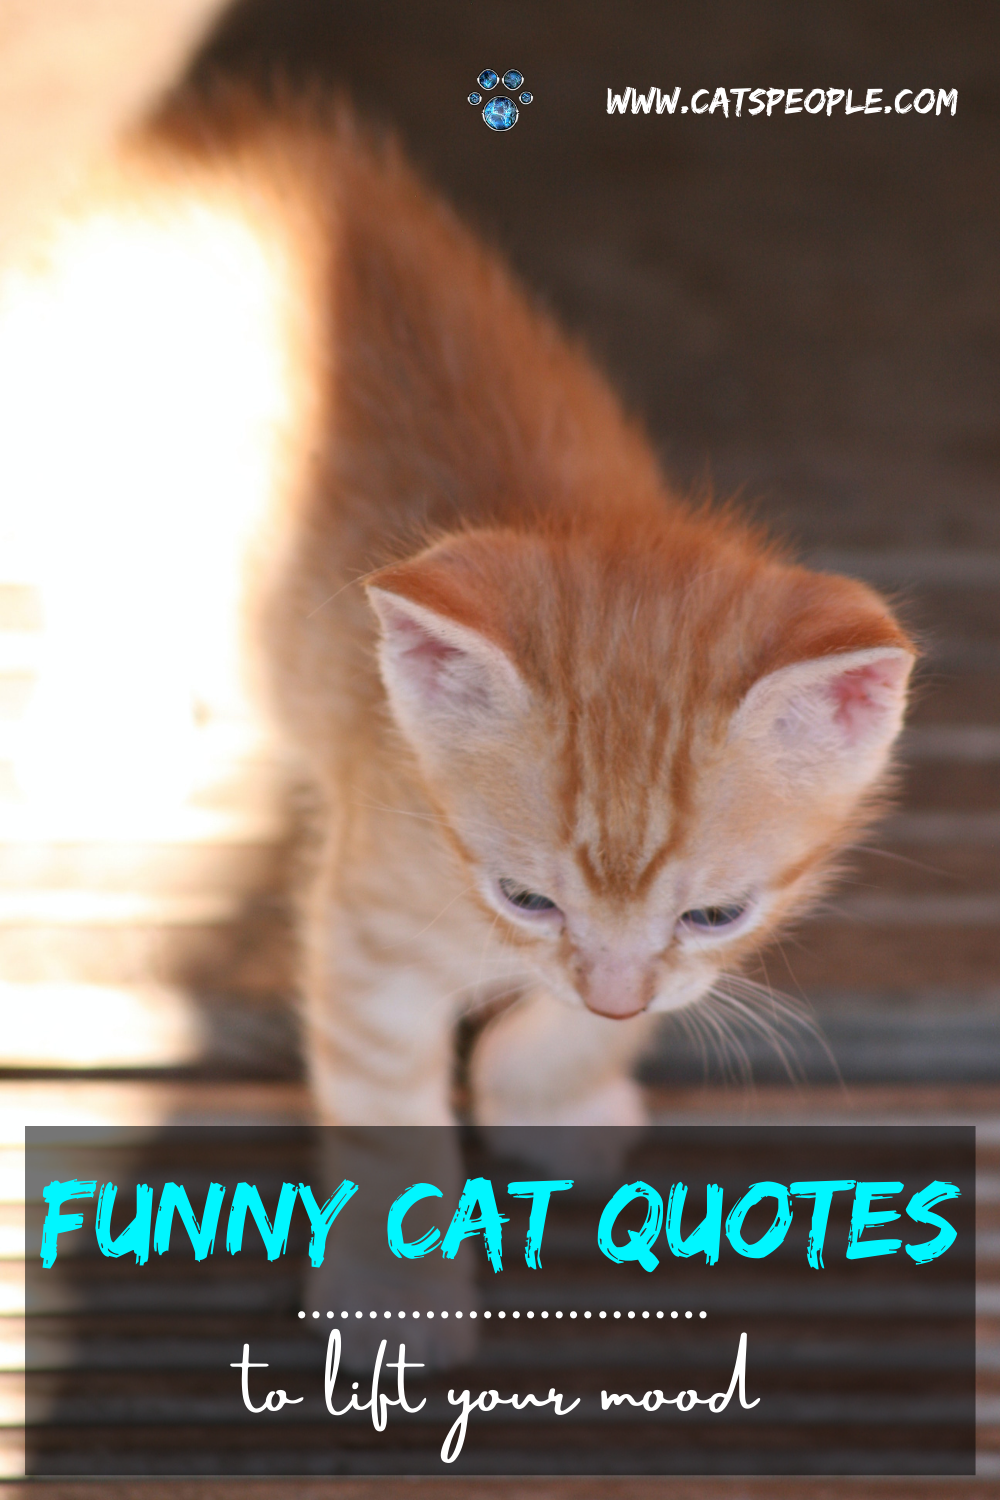 Funny But True Cat Quotes To Make Your Day Brighter Cat Quotes Funny Cat Quotes Cats